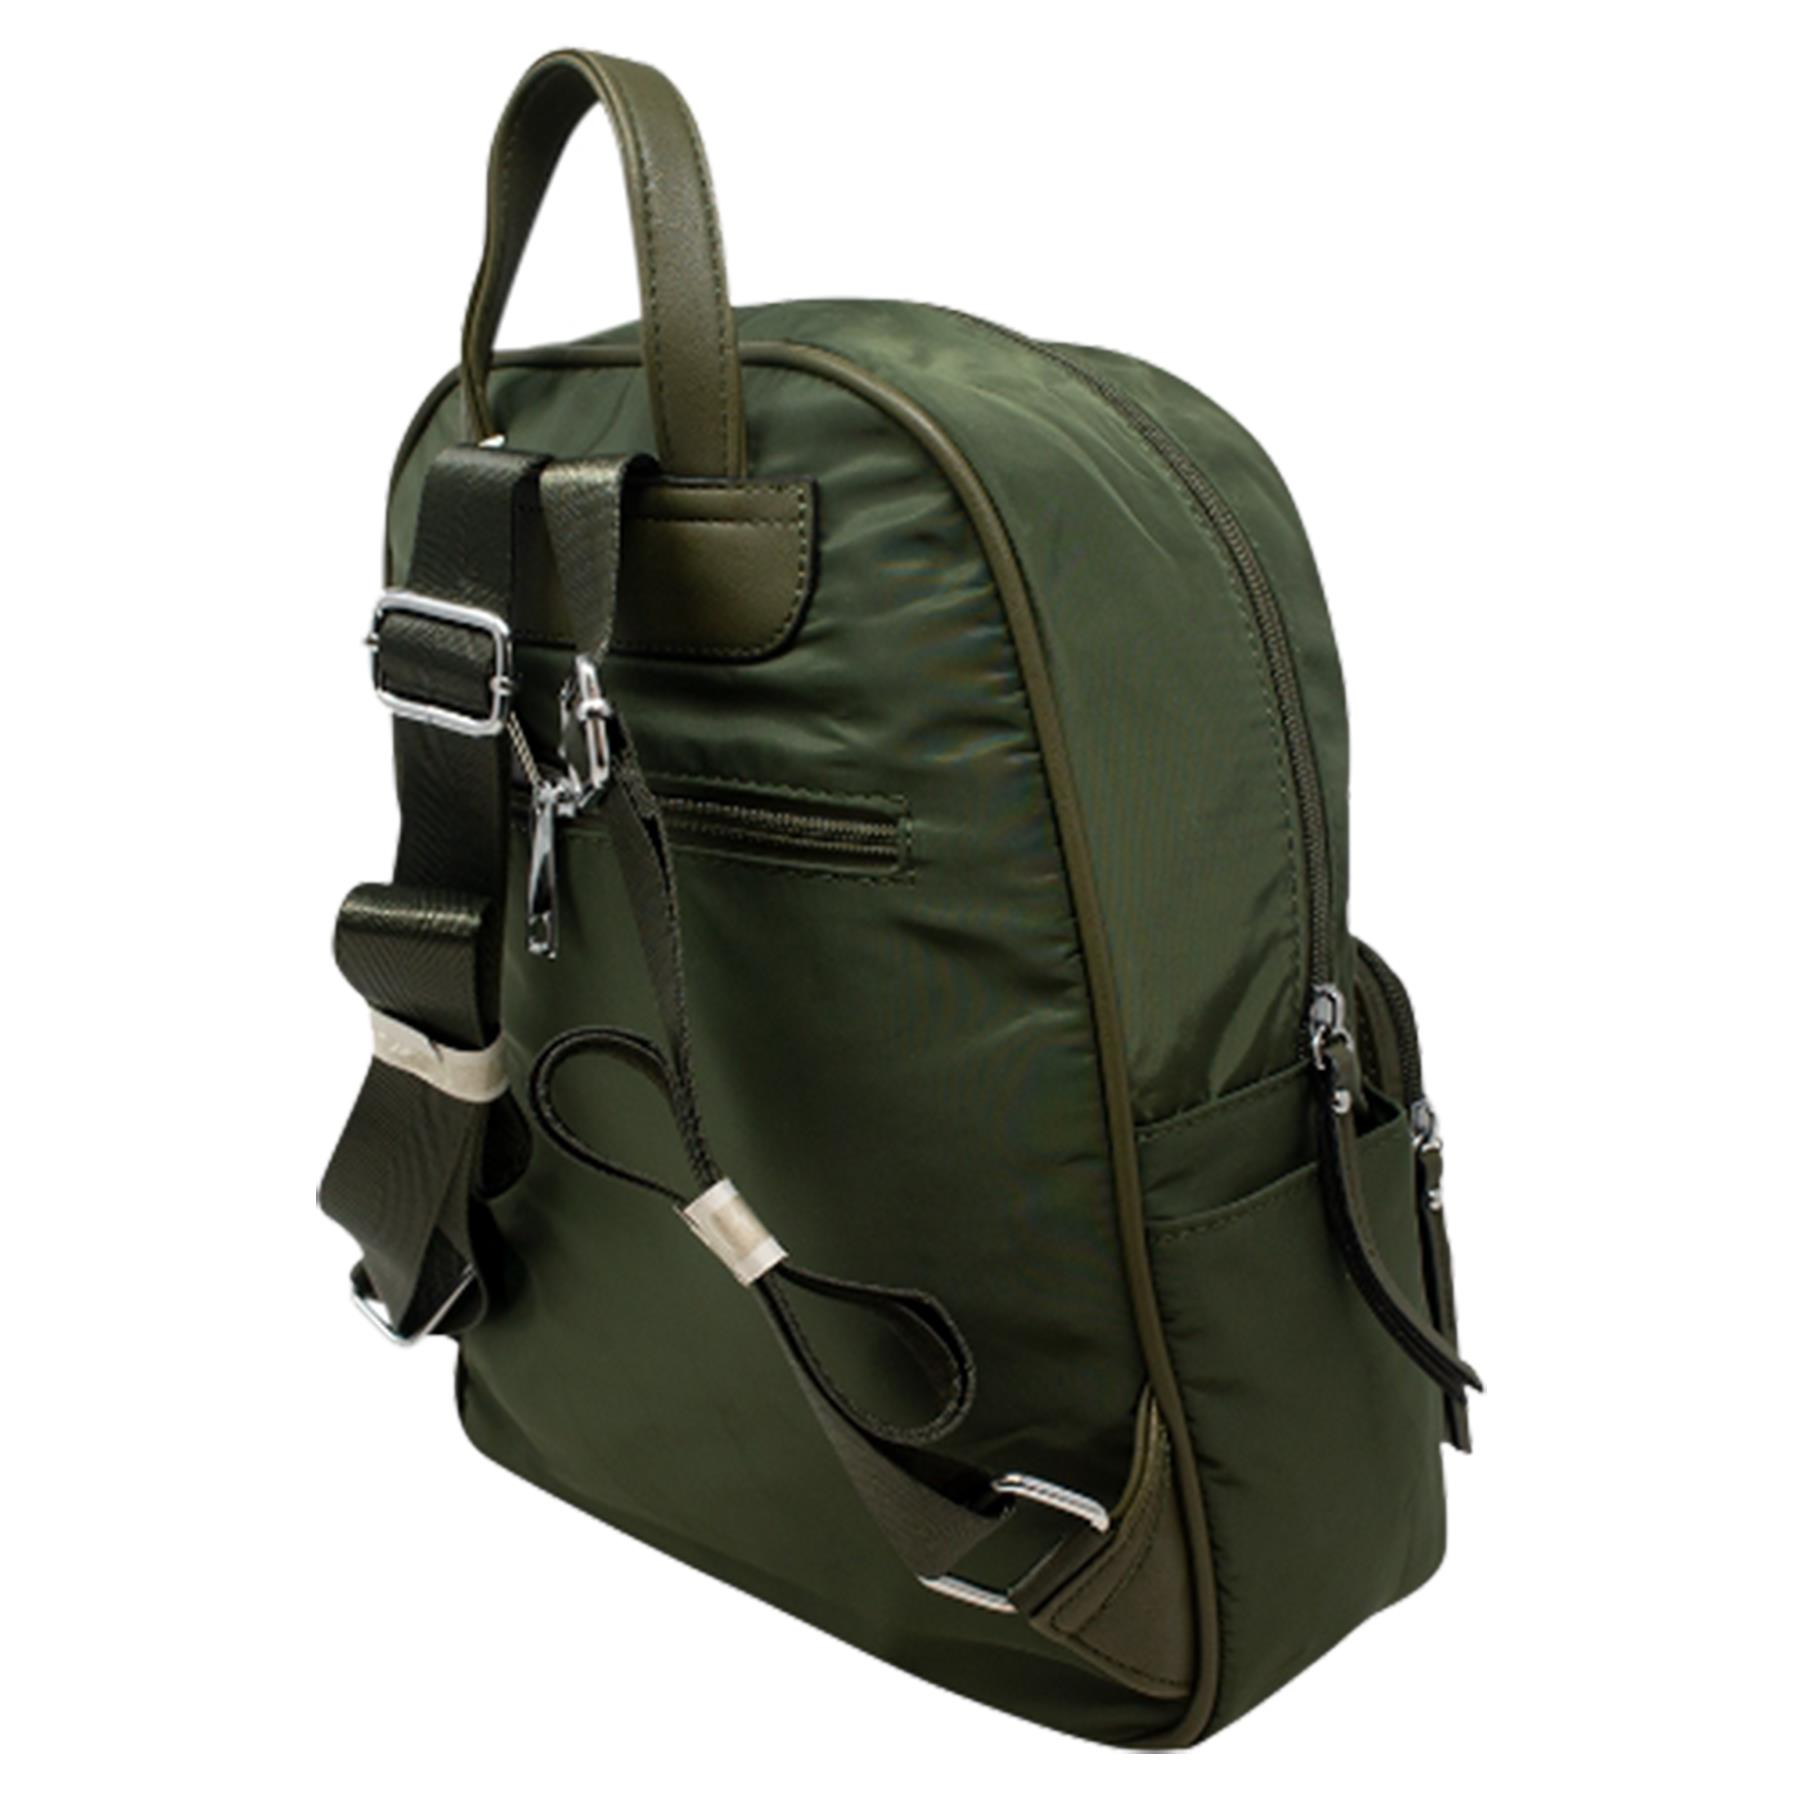 New-Unisex-Plain-Nylon-Showerproof-School-College-Backpack-Rucksack thumbnail 14